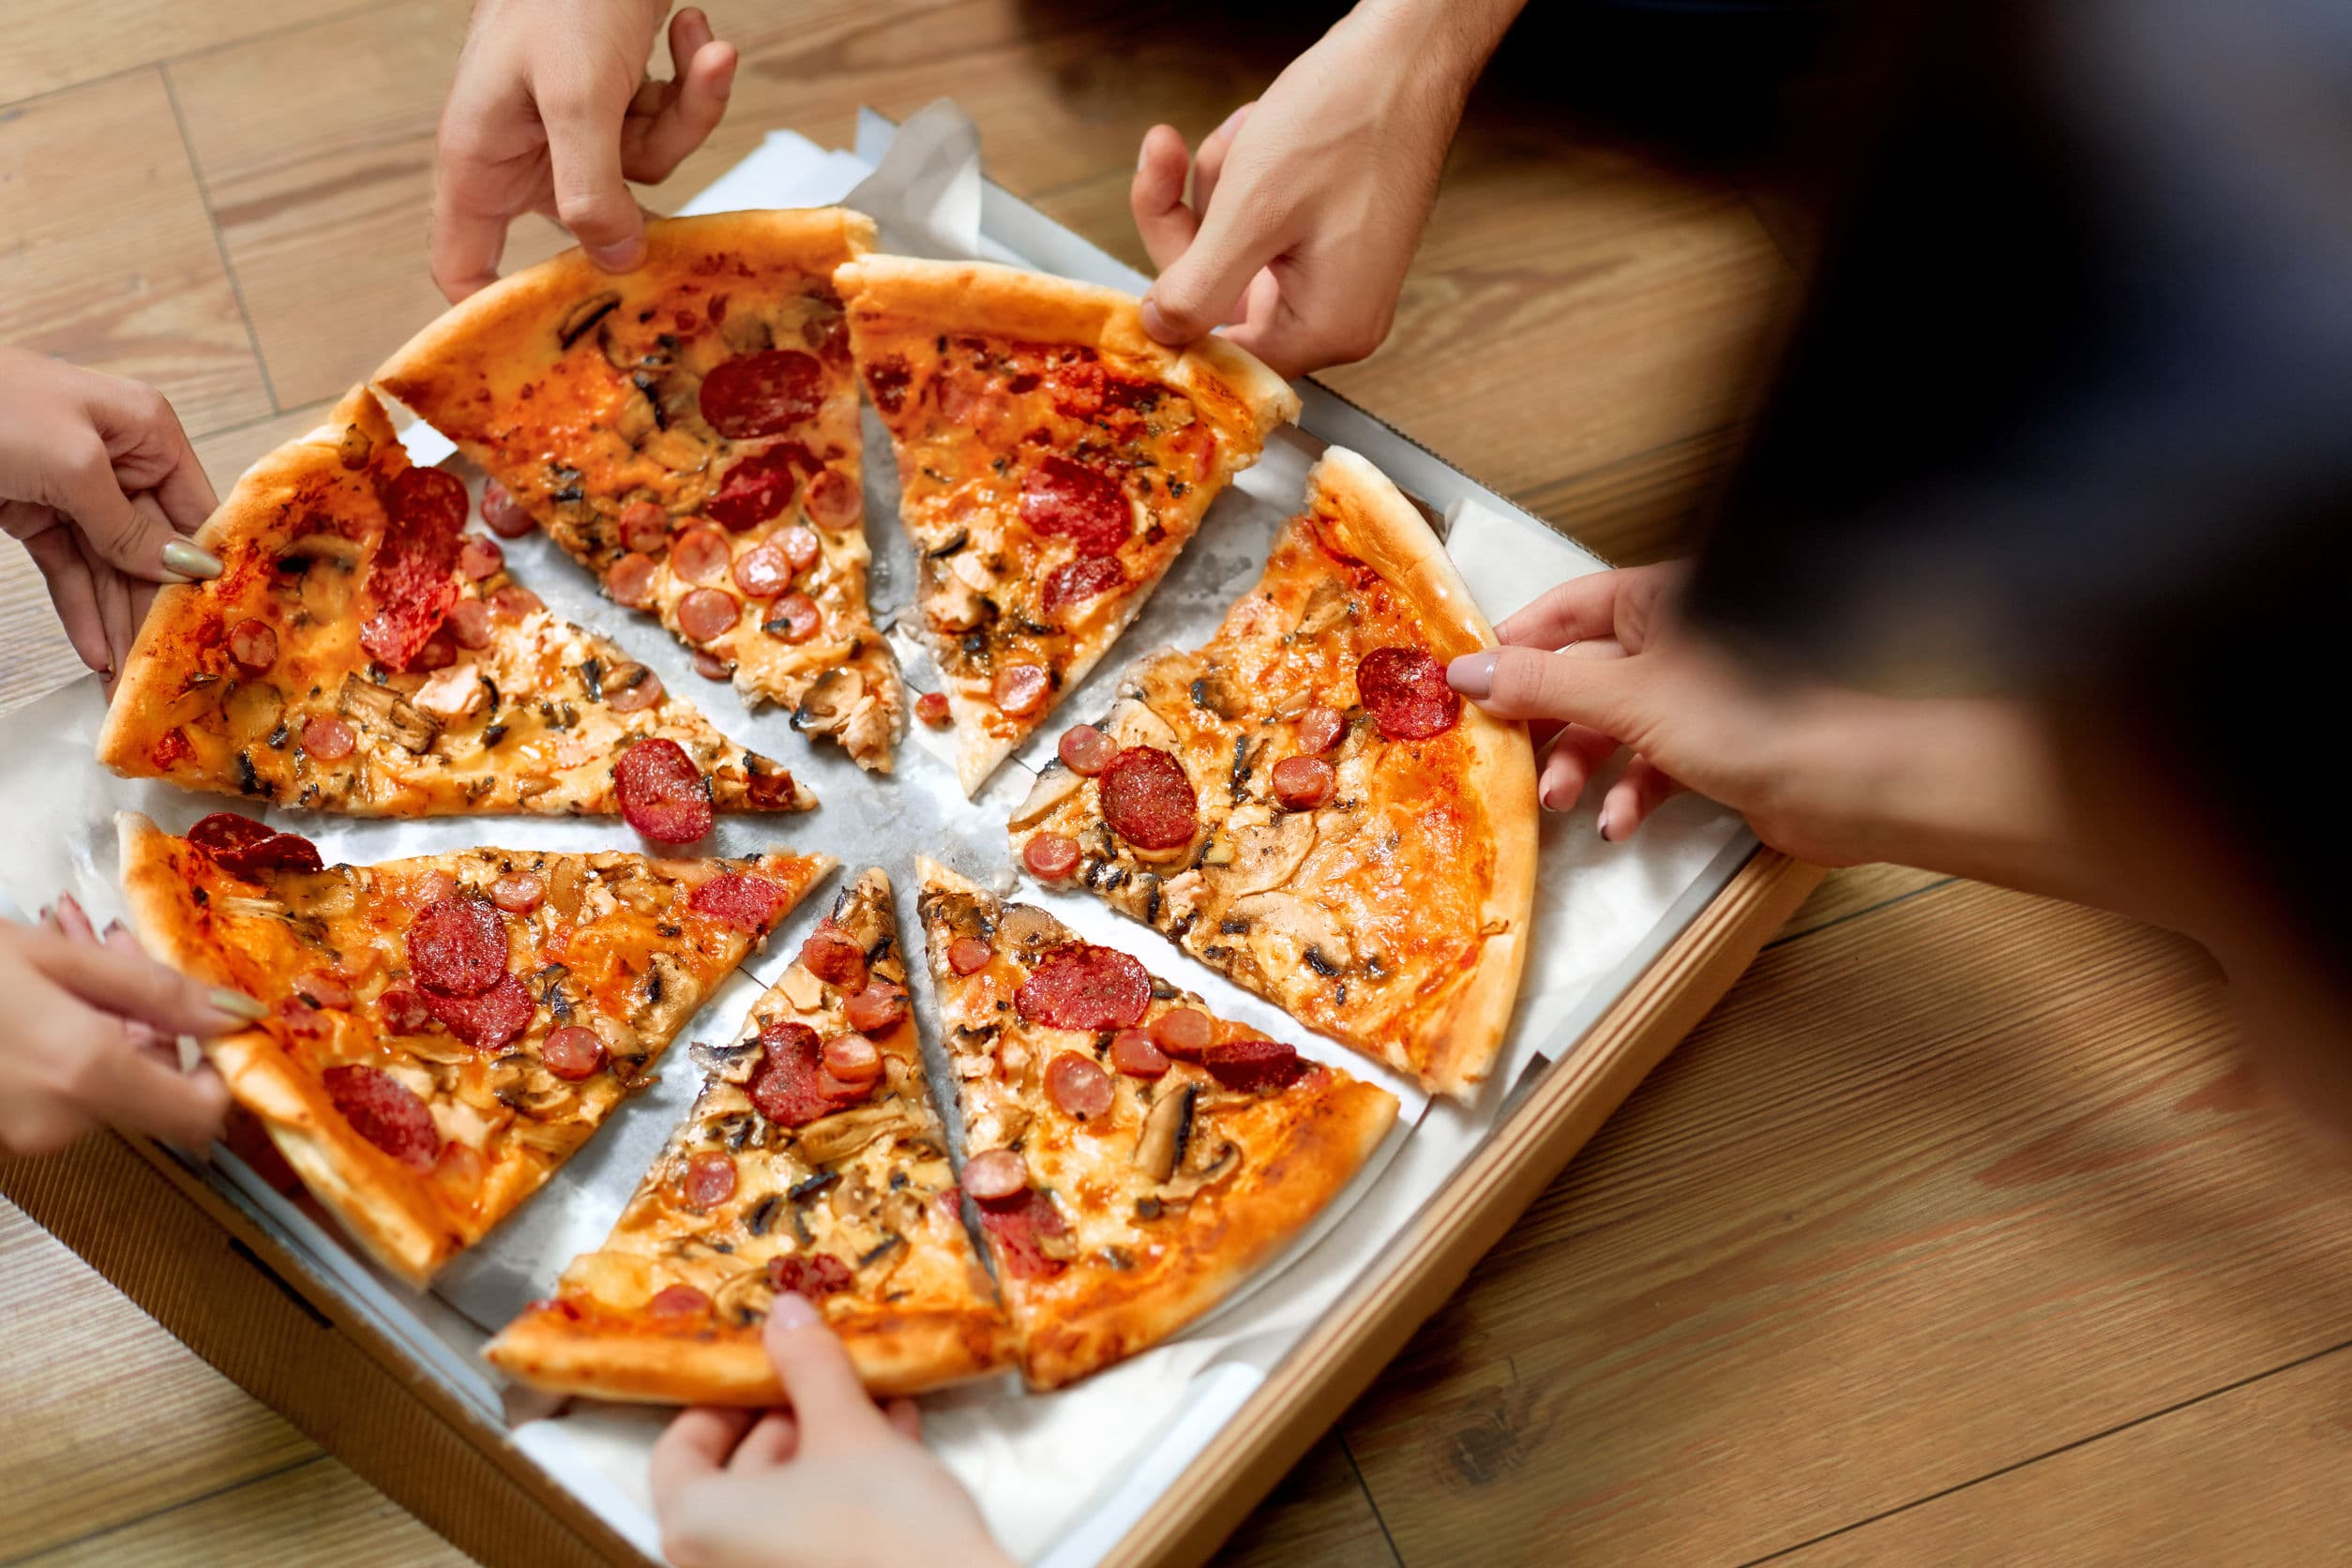 Commercial Pizza Ovens Help Chefs Create The Perfect Pie